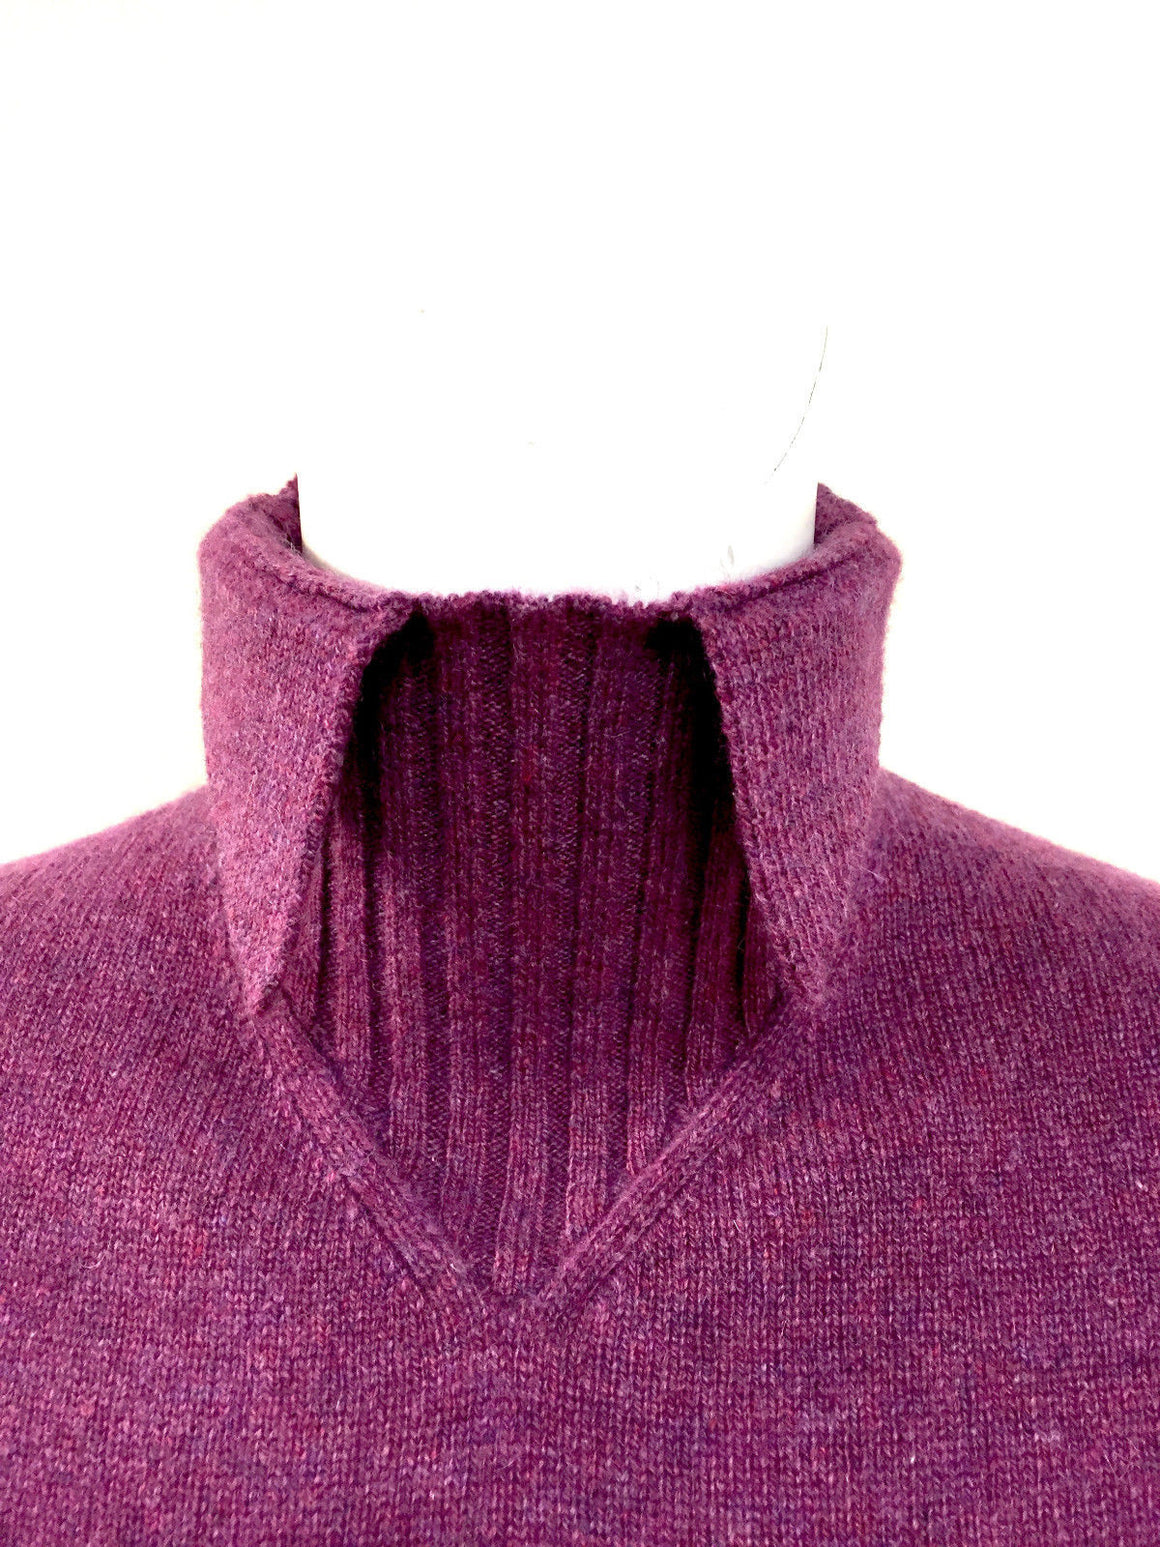 bisbiz.com CHANEL New with Tags Orchid-Fuchsia Cashmere Turtleneck Sweater Top with Pointed Collar & Cuffs Size: S/M - Bis Luxury Resale